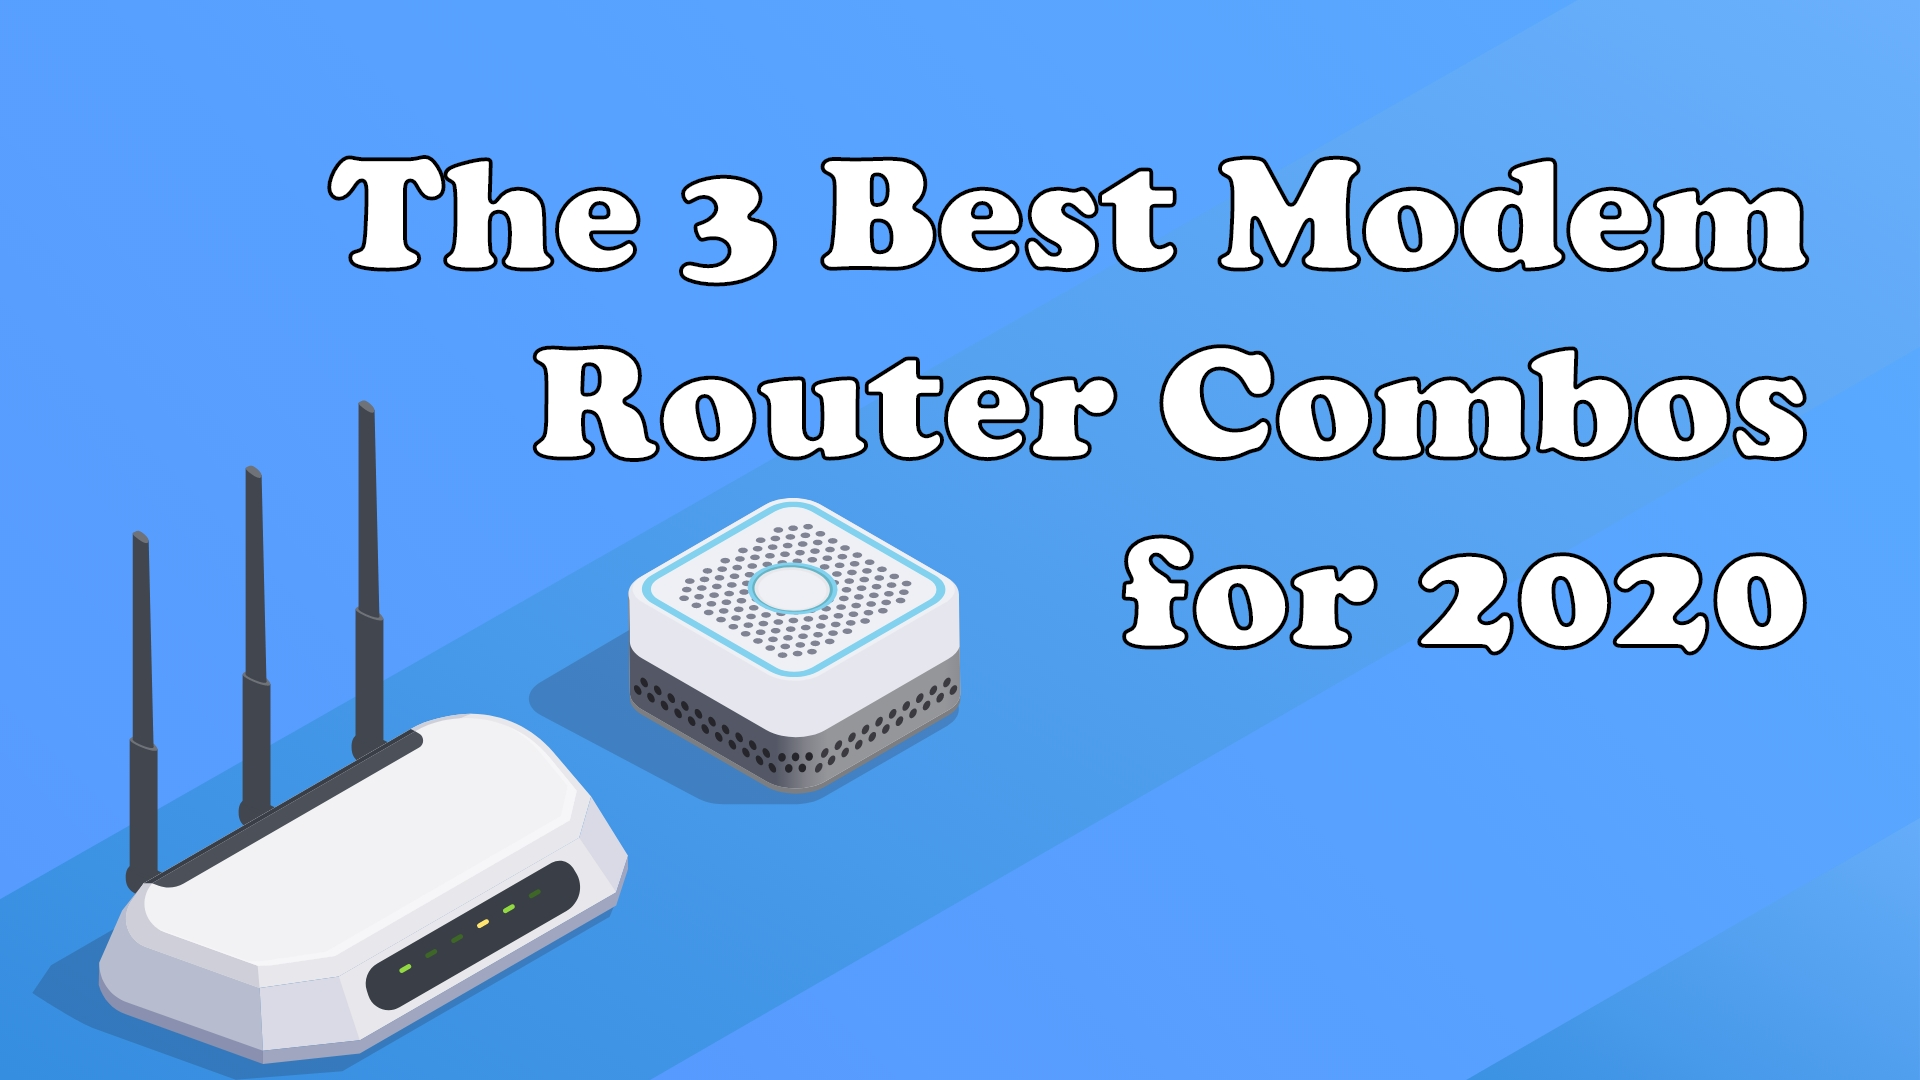 The 3 Best Modem Router Combos for 2020